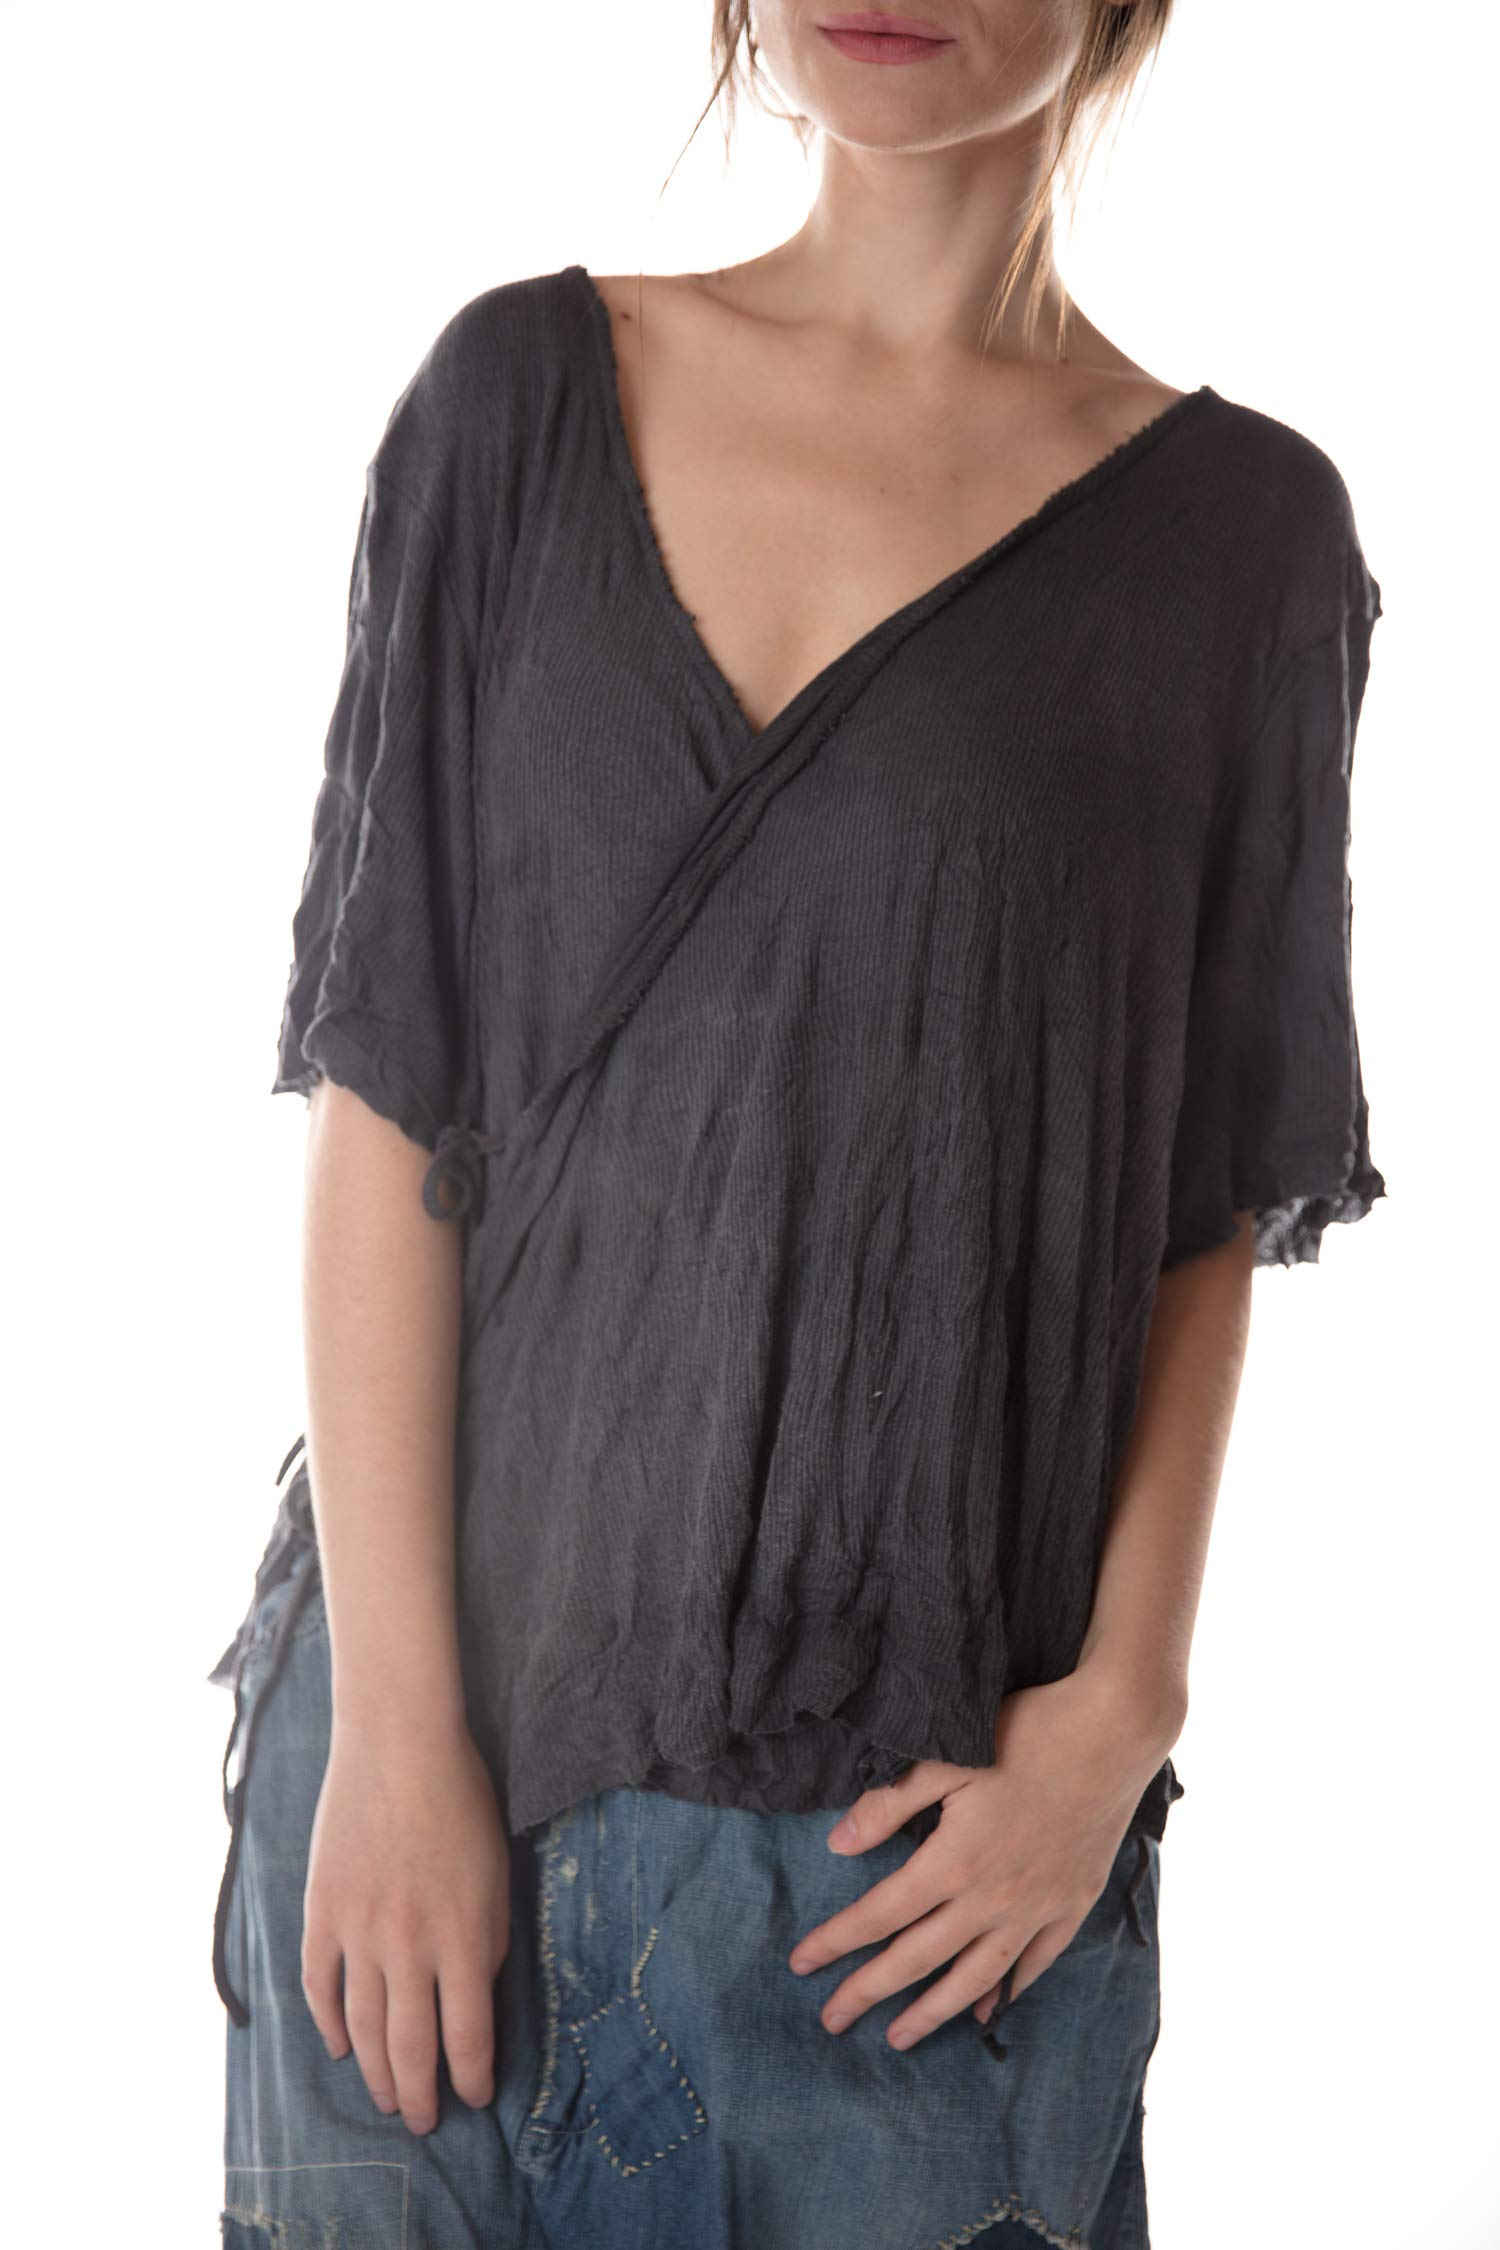 Magnolia Pearl Ribbed Cotton Jersey Origami Wrap Blouse with Dist by Magnolia Pearl